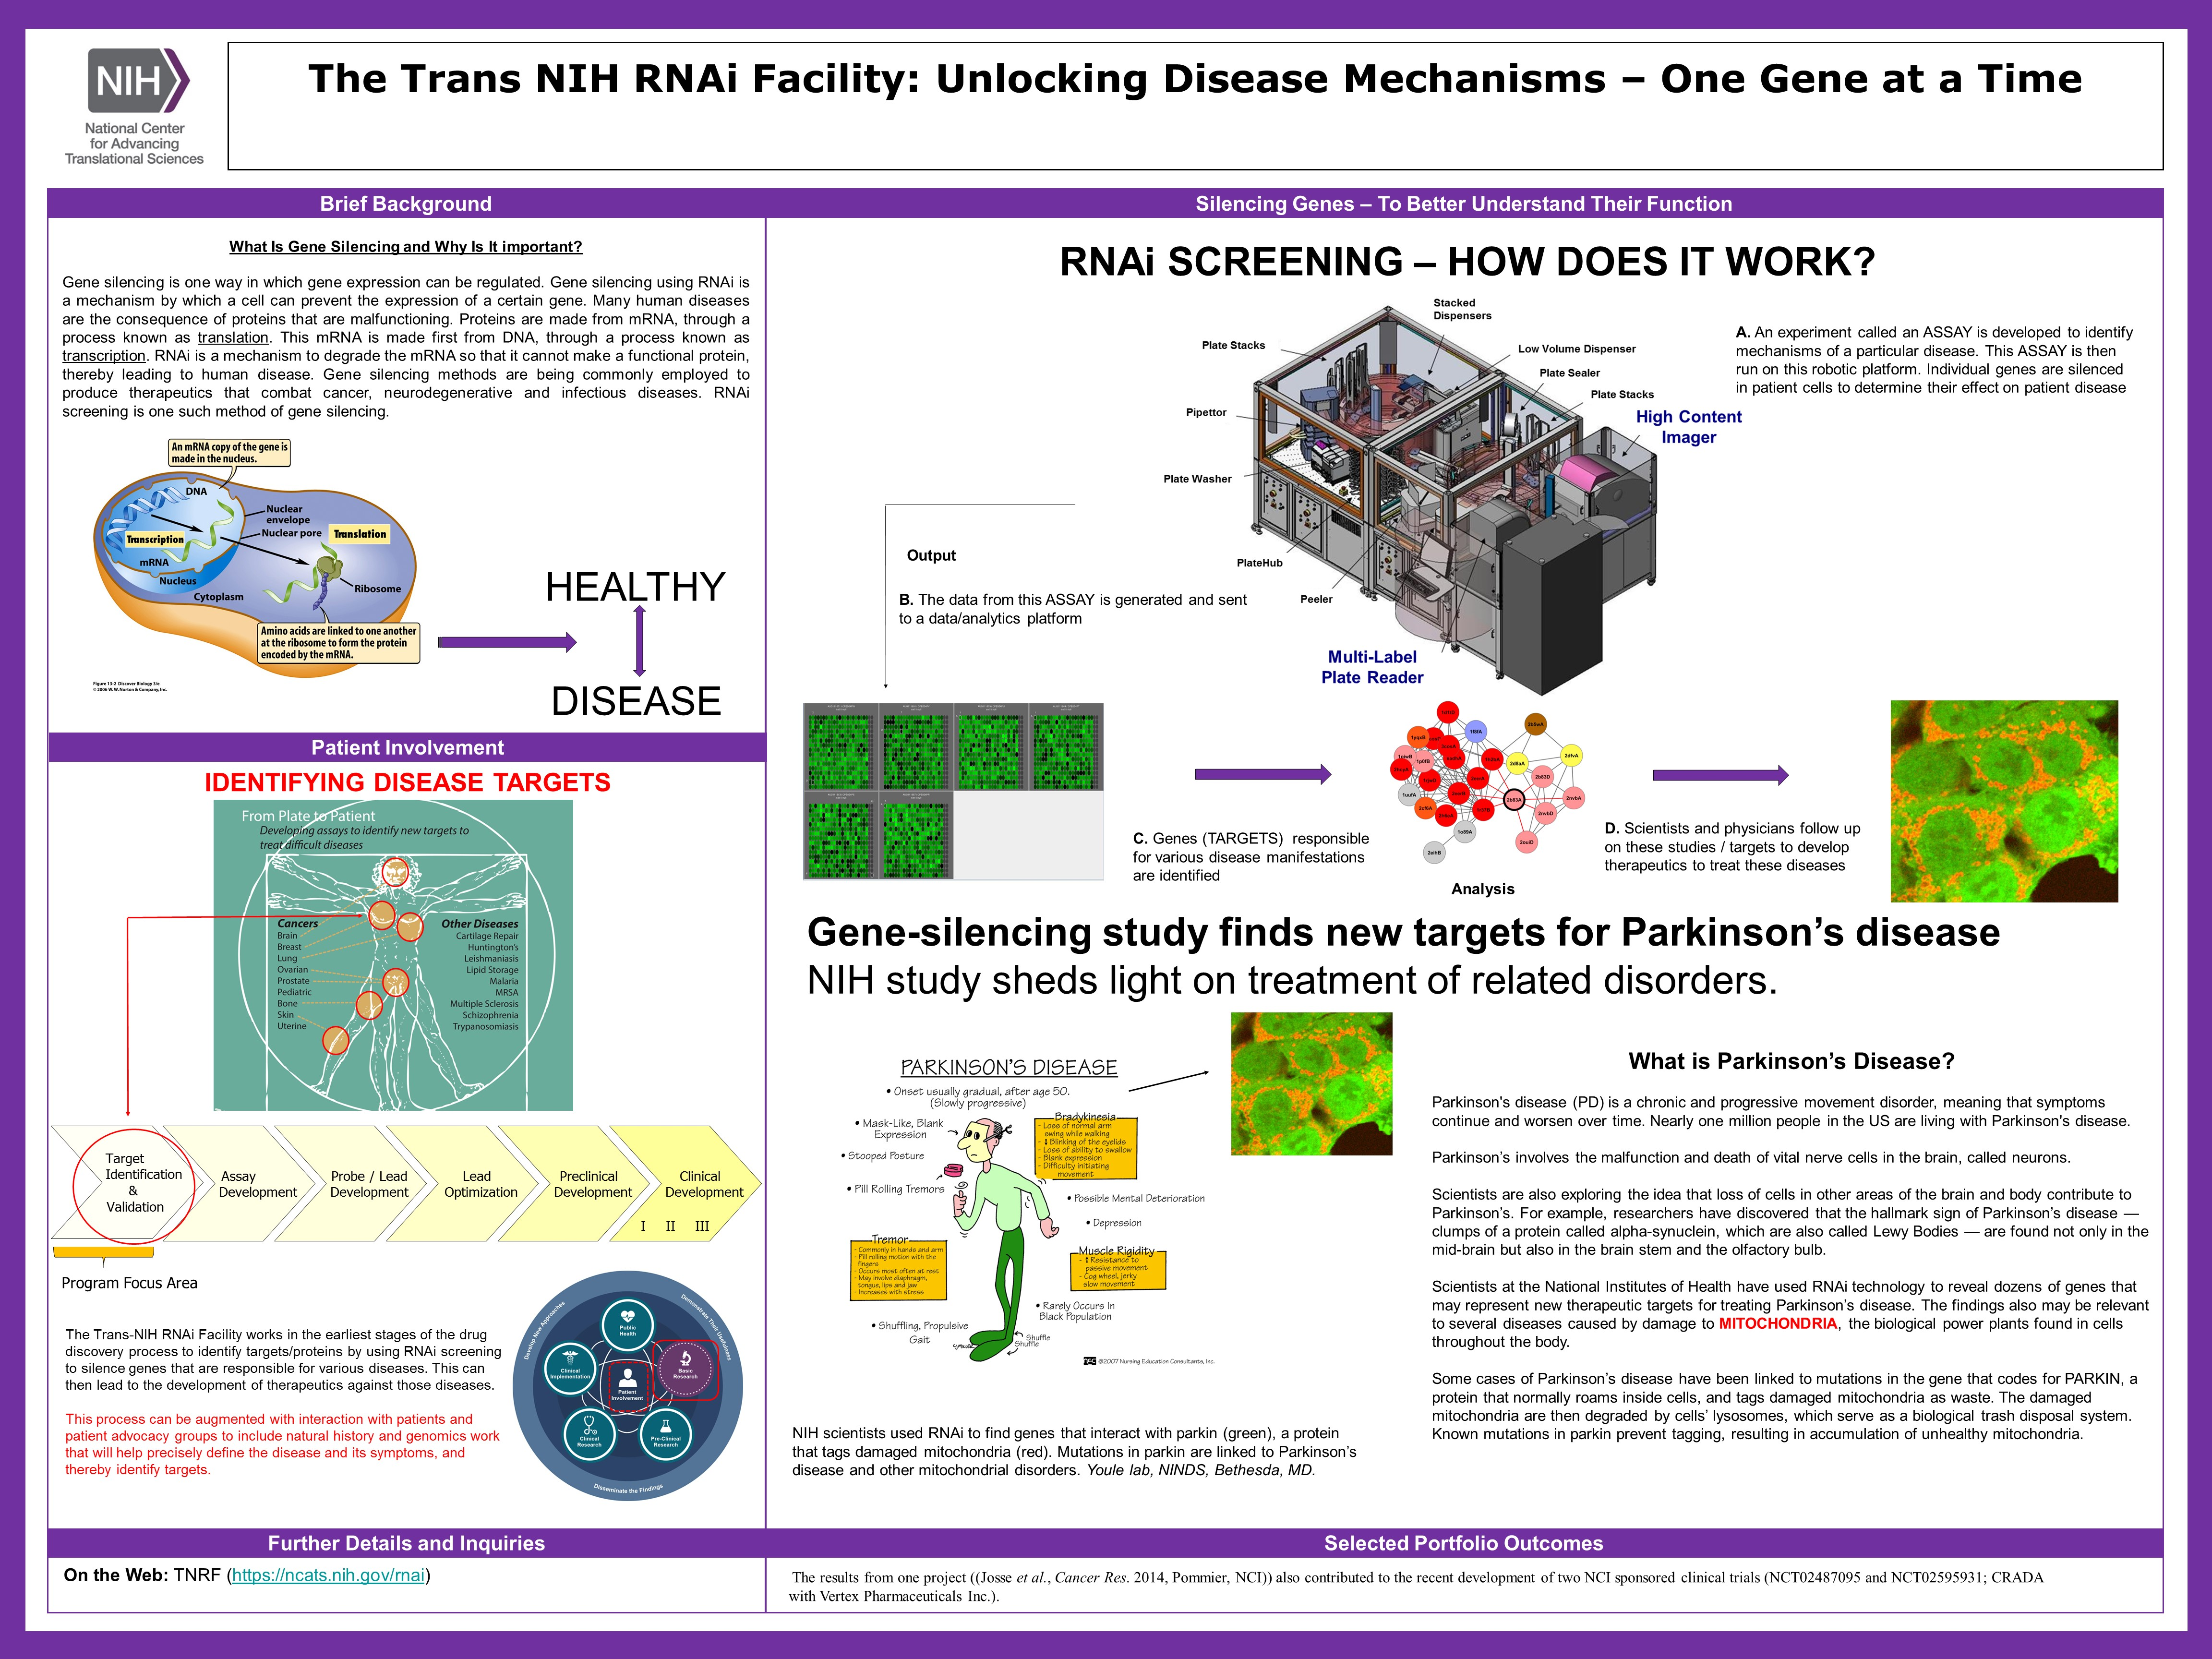 This NCATS Day poster provides background on the Trans-NIH RNAi Facility, including goals, where it falls within the path of drug and therapeutics development and the translational science spectrum, how patients and advocates can get involved, and how NCATS addresses scientific and operational challenges.